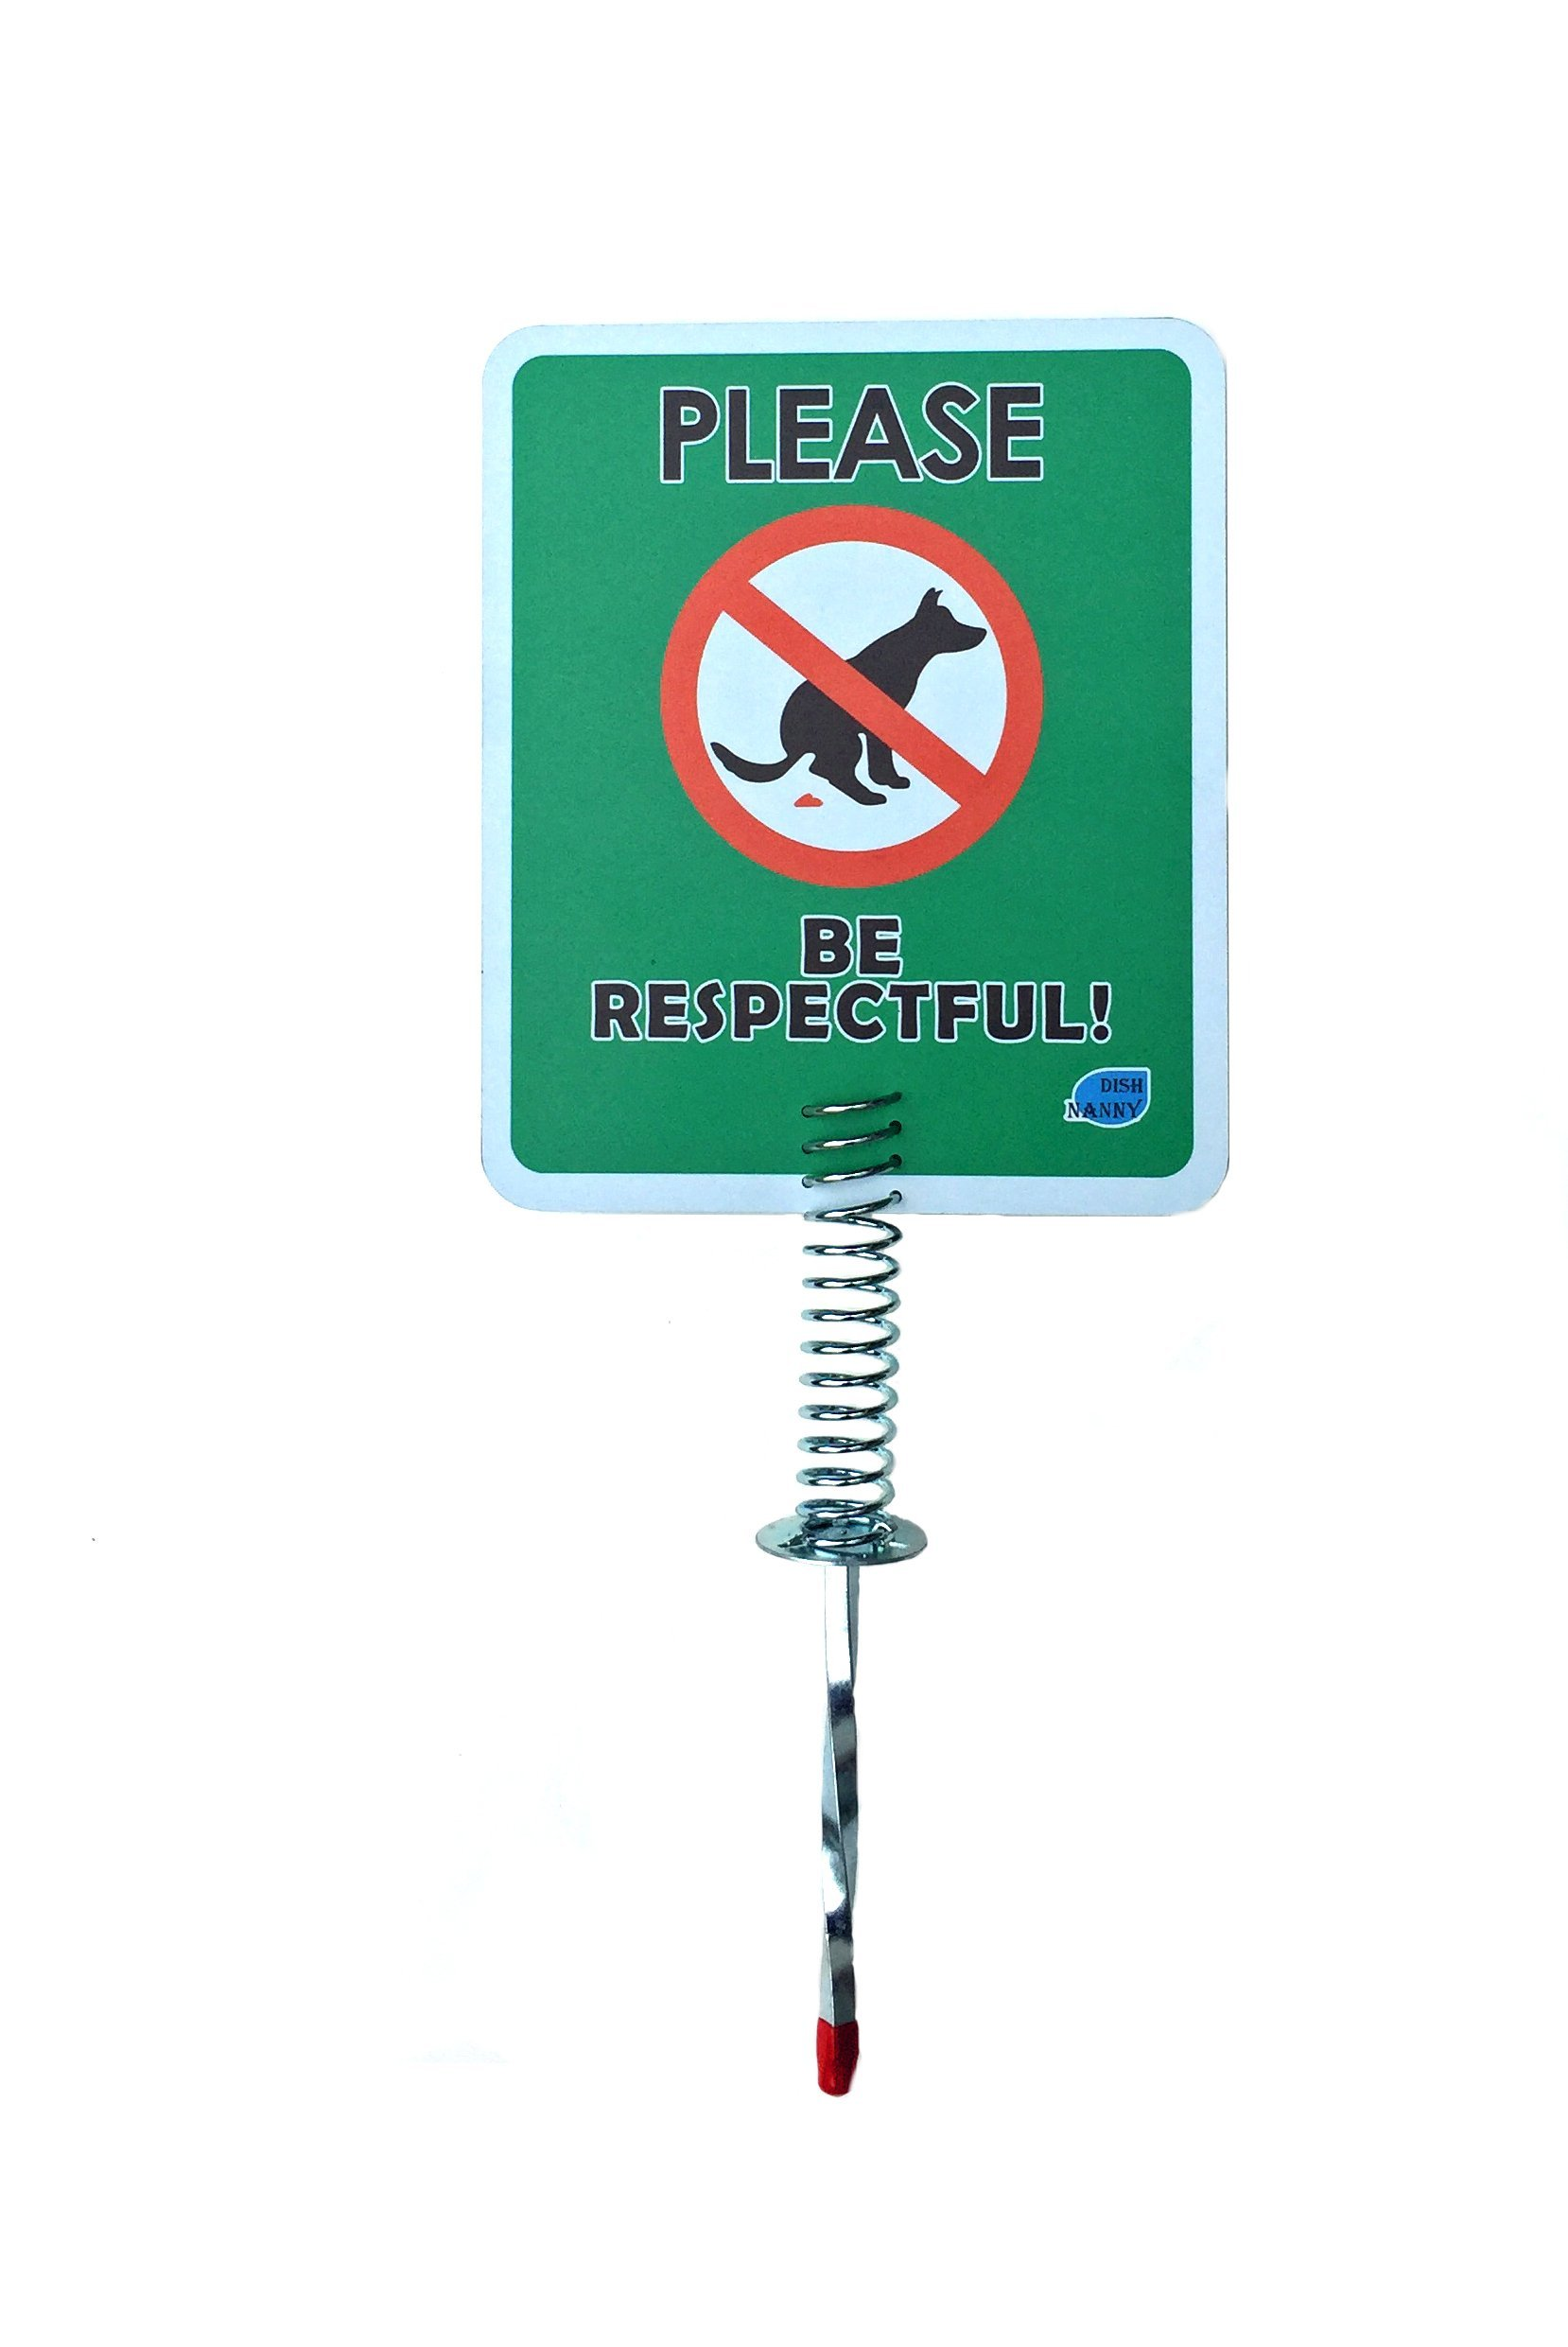 NEW & Improved - No Dog Poop Yard Sign | Please Be Respectful Signs MADE WITH METAL STAKE Dog Poop Signs For Yard, Stop Pets Pooping or Peeing the Lawn Yard (Please Be Respectful)